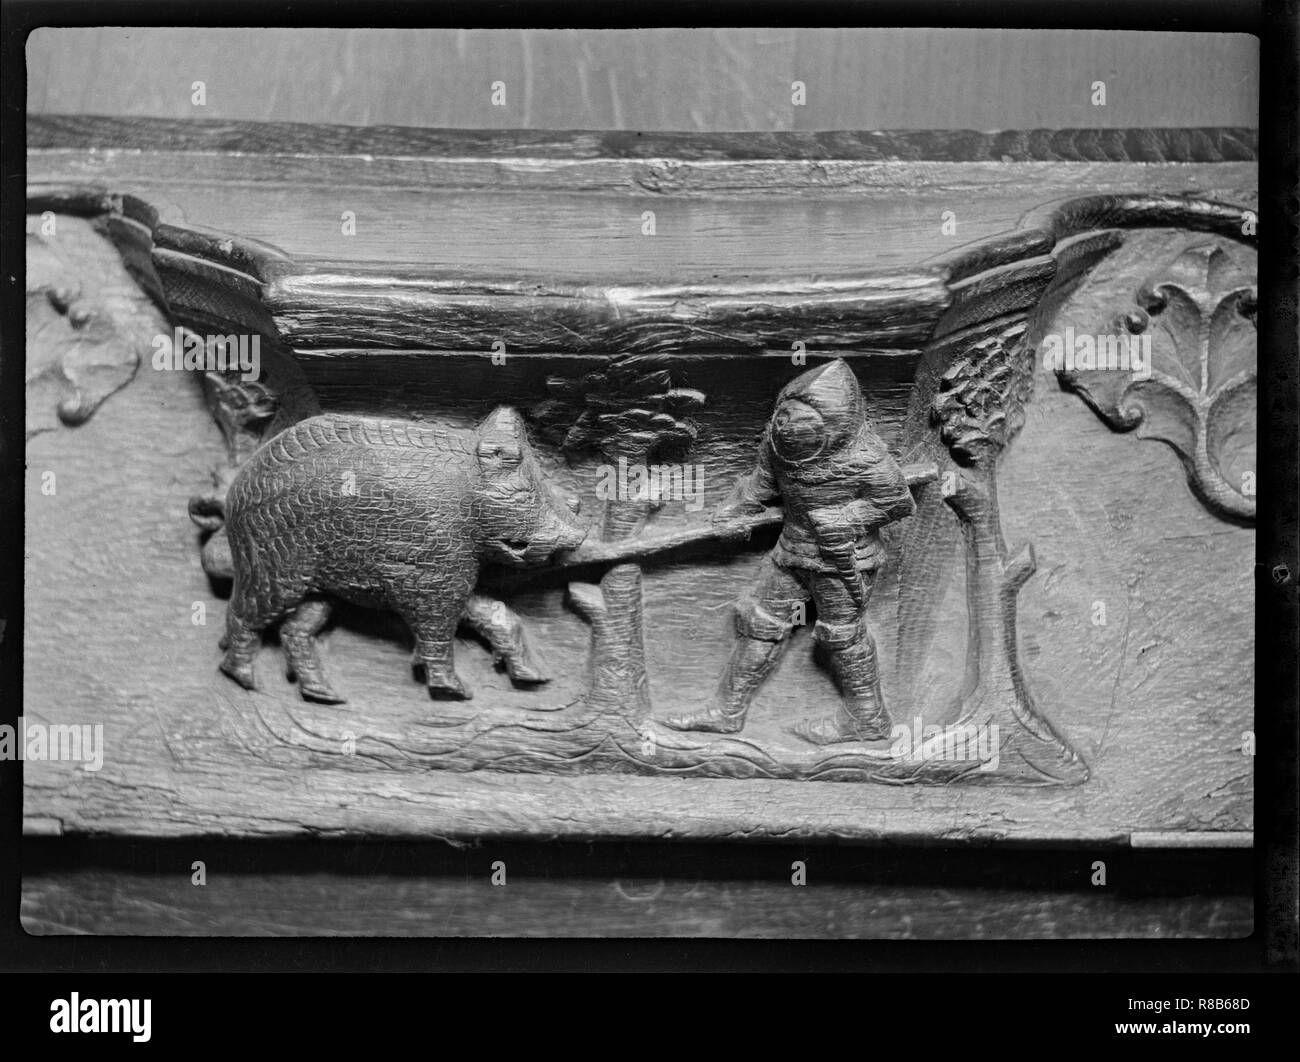 Misericord, St Mary's Church, North Bar Within, Beverley, East Riding of Yorkshire, 1920-1945. A misericord depicting a knight with a spear attacking  - Stock Image